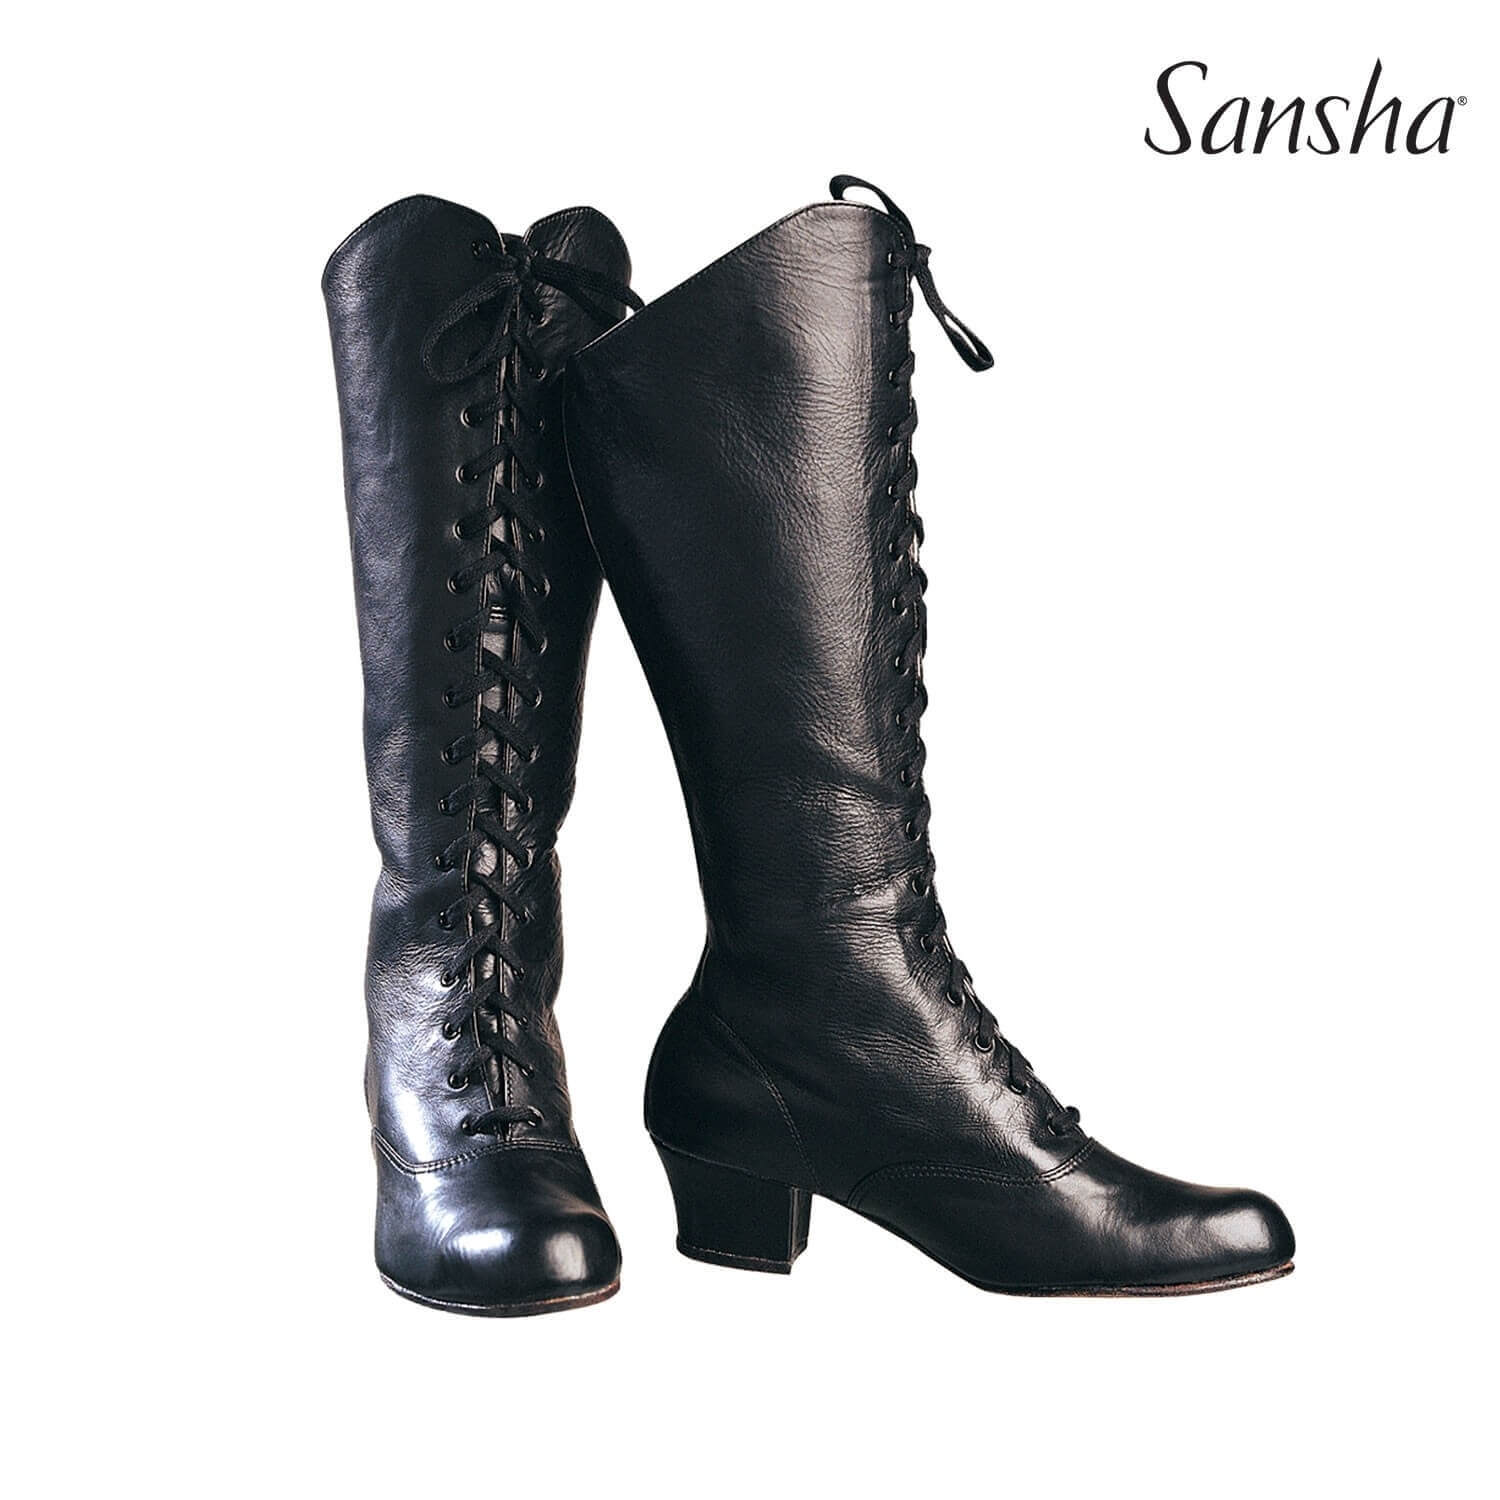 Sansha Leather Can-can Front Lace-up Character Boots